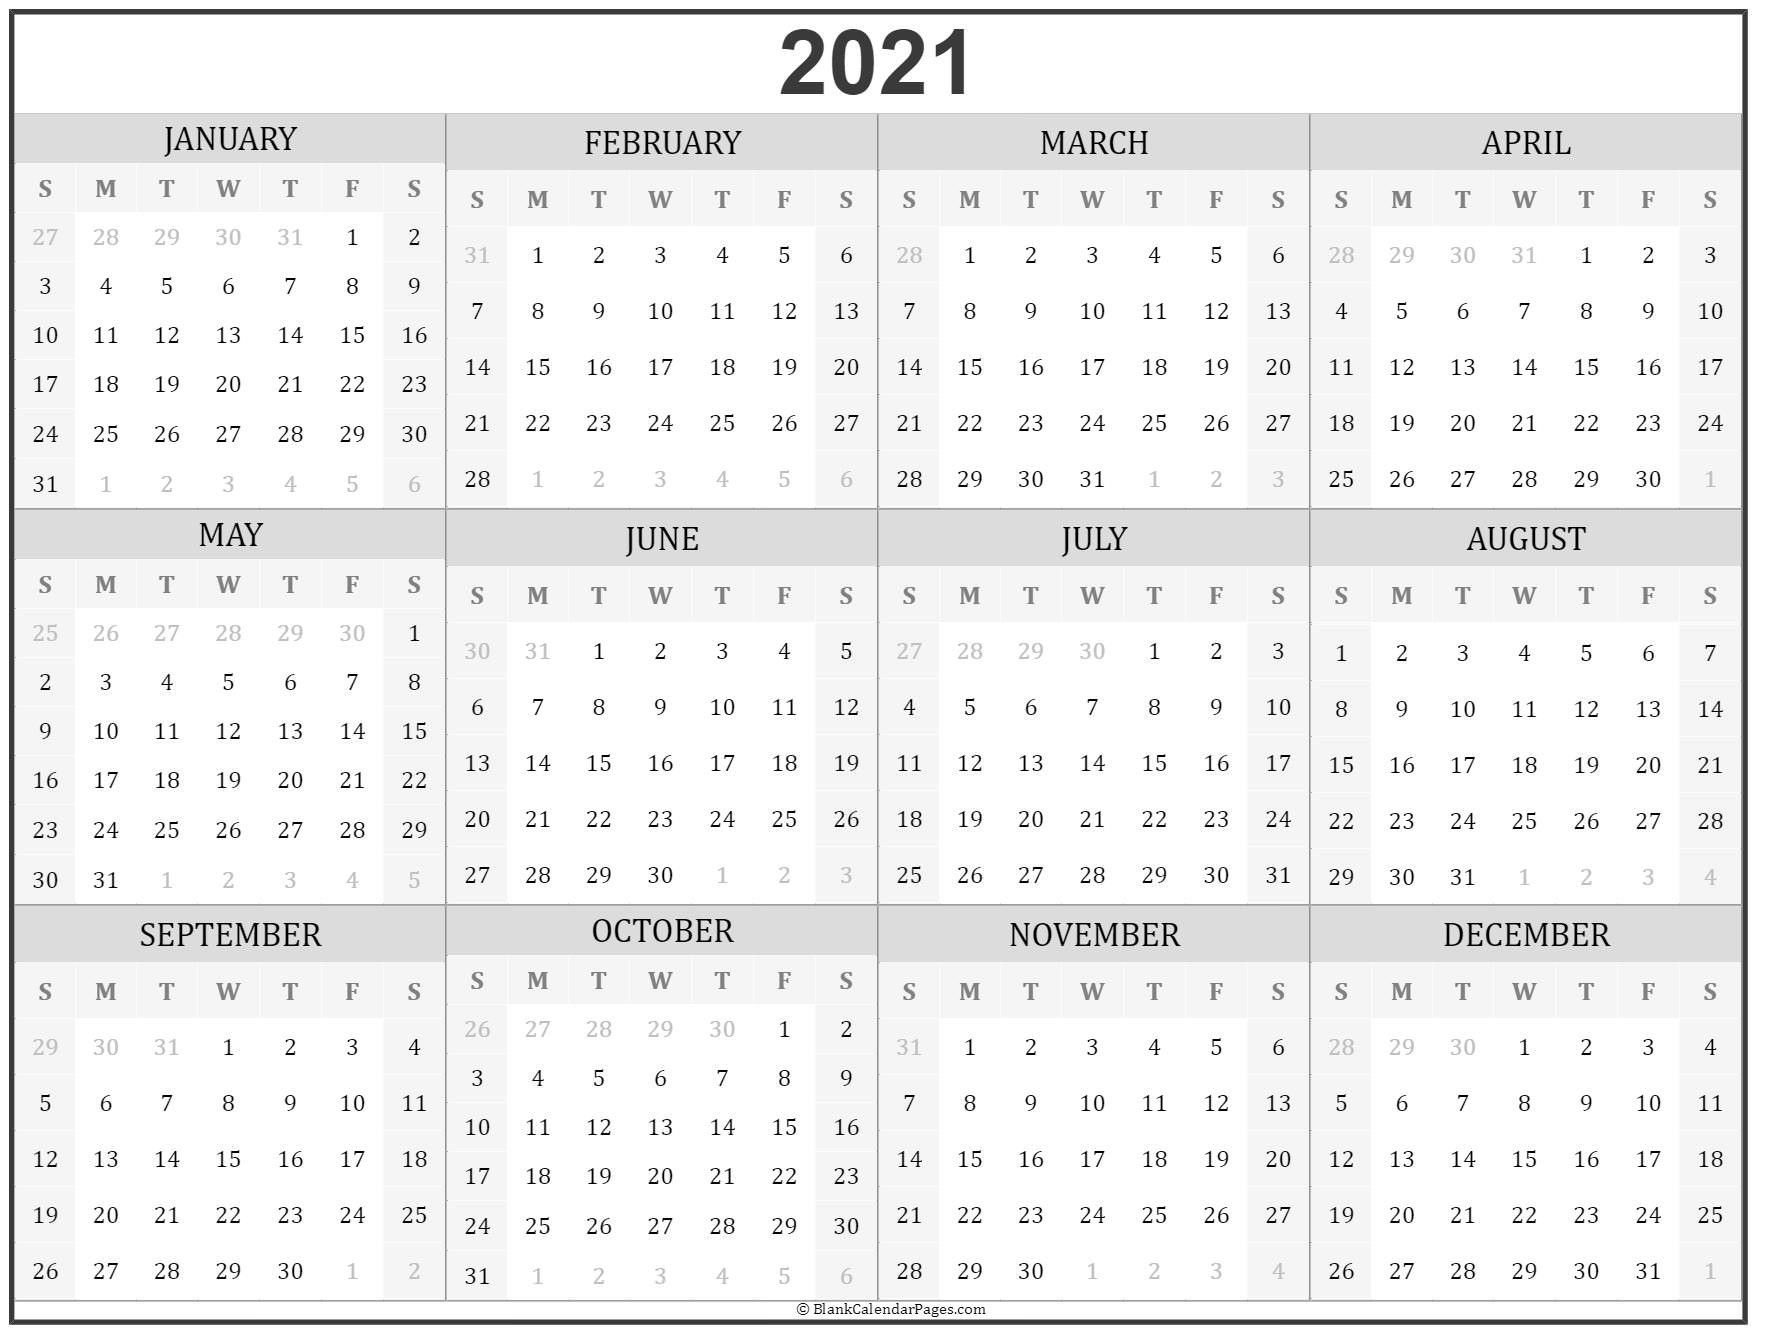 Free 2021 Yearly Calendar 2021 Yearly Calendar Template Printable – Welcome for you to our